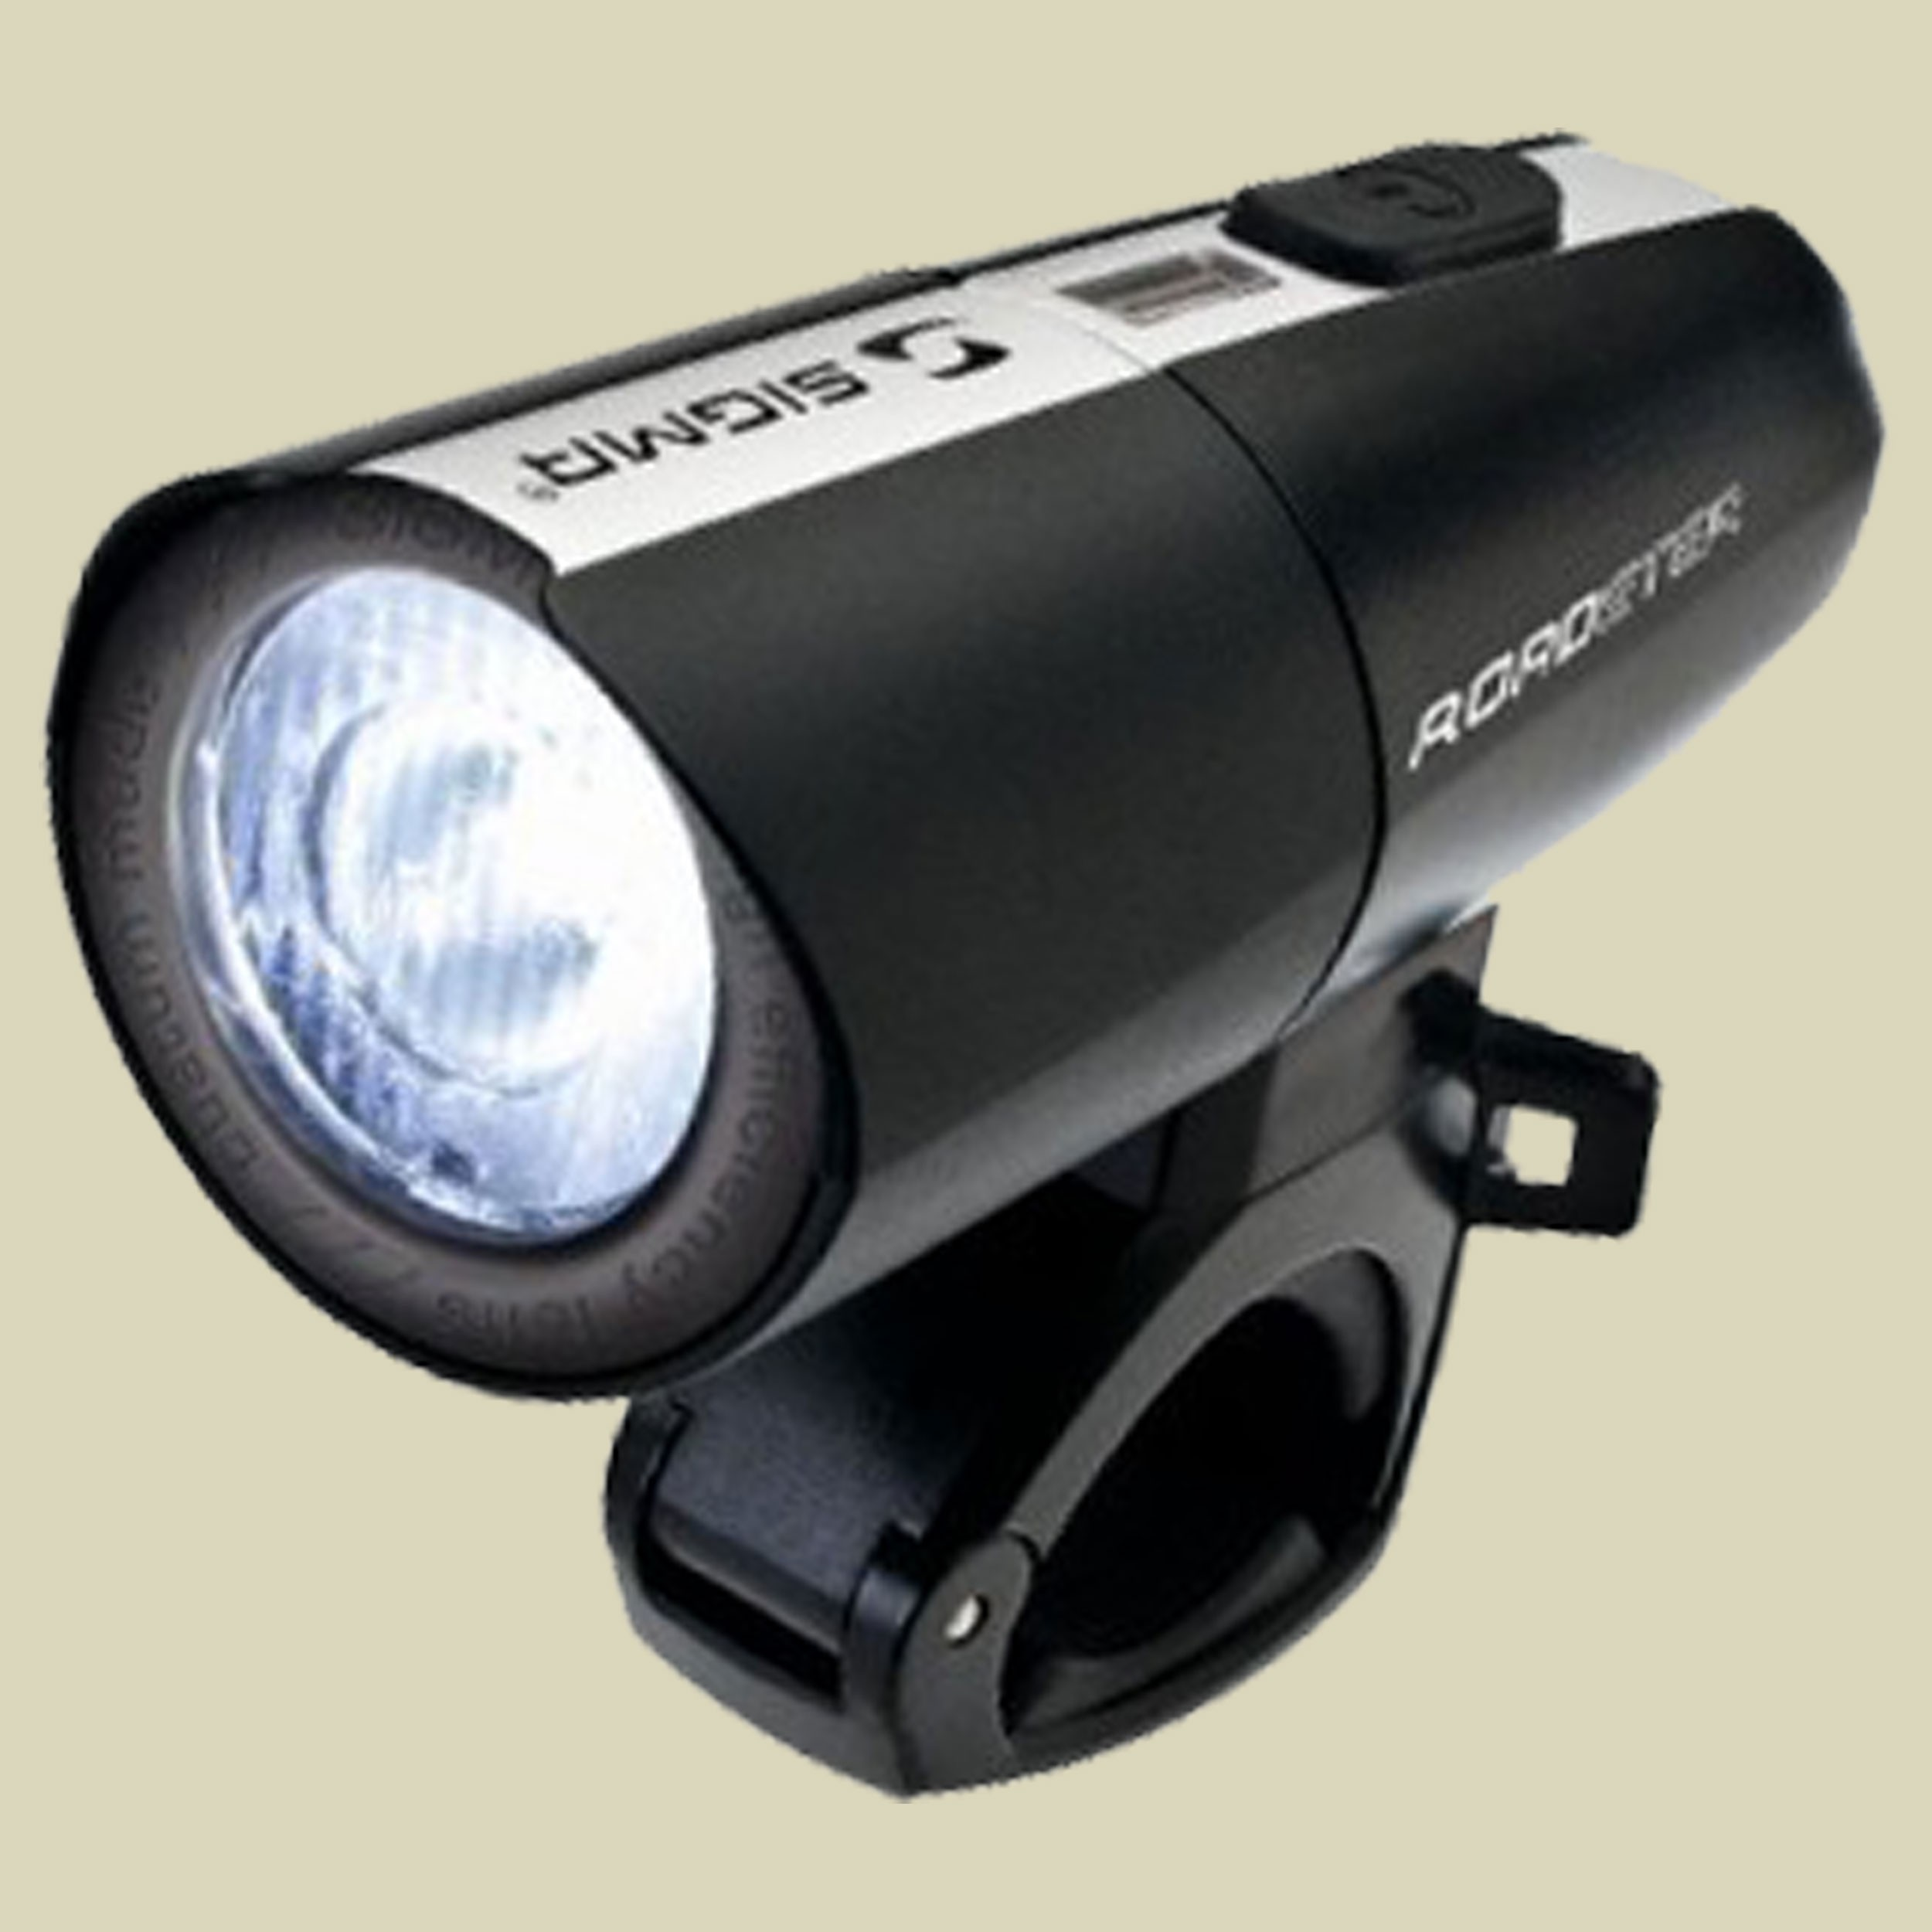 absolut_bikes_sigma_roadster_LED_Lampe_1015415_fallback